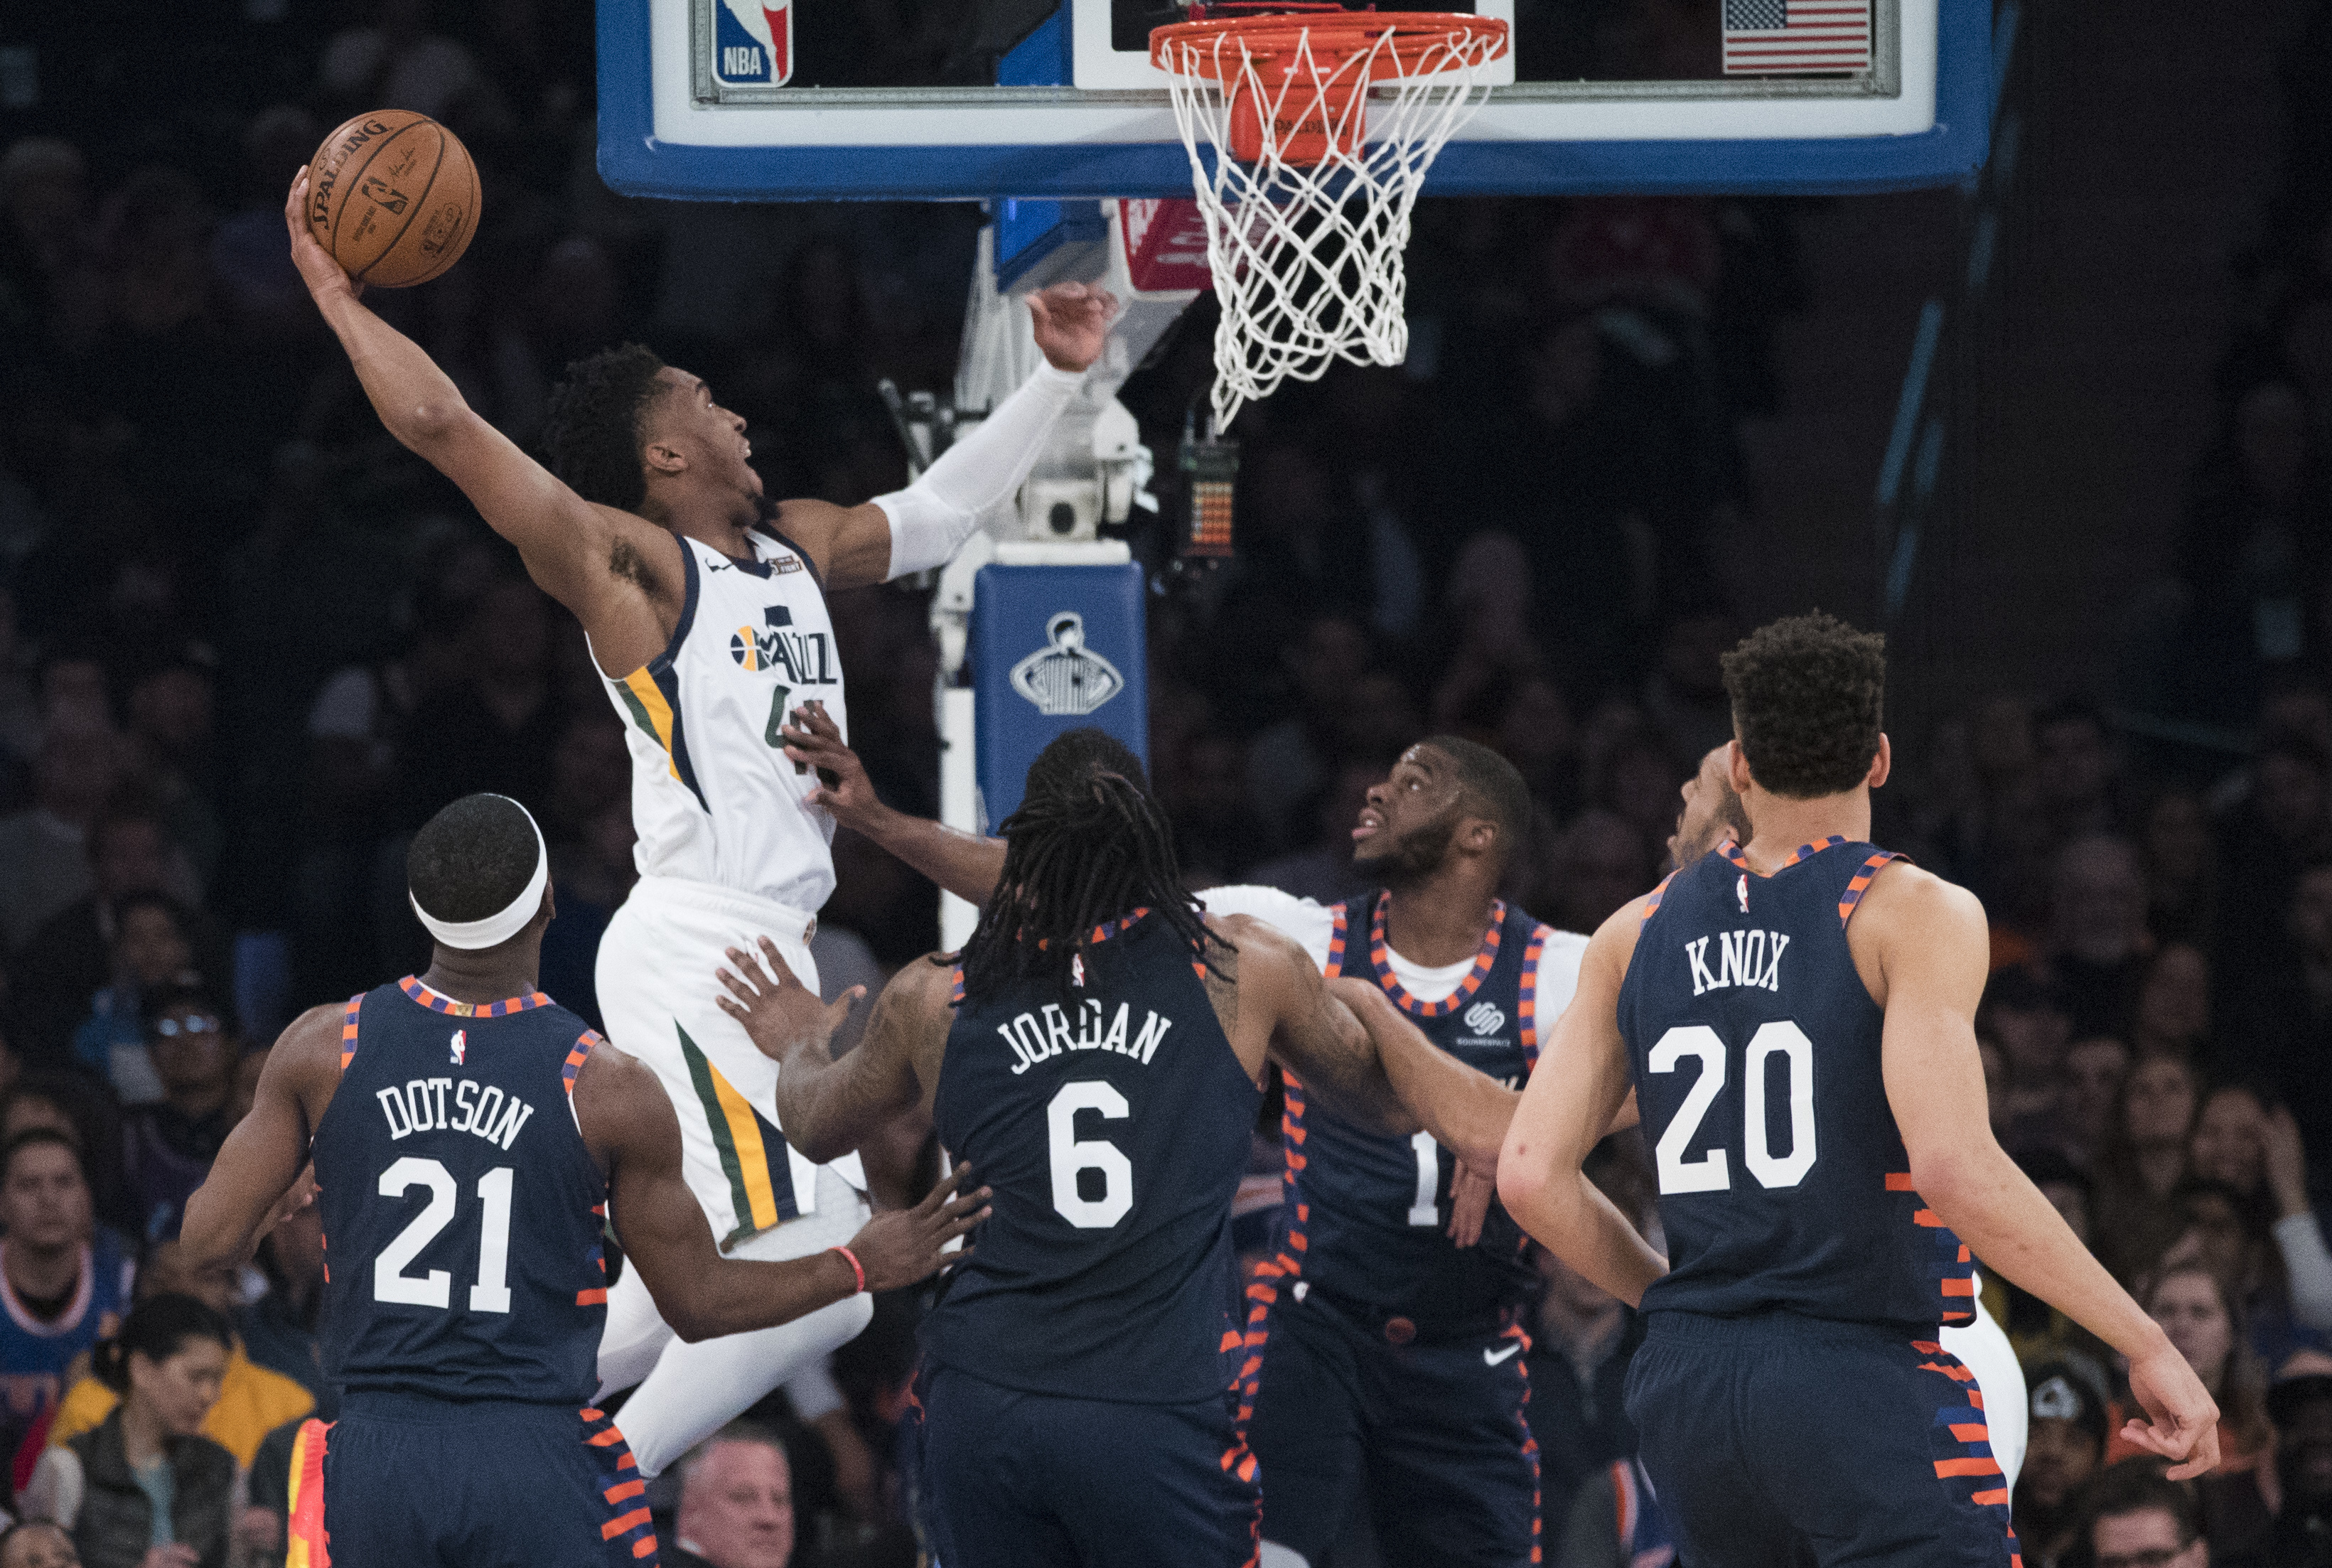 Inspired Donovan Mitchell scores 30 against Knicks with